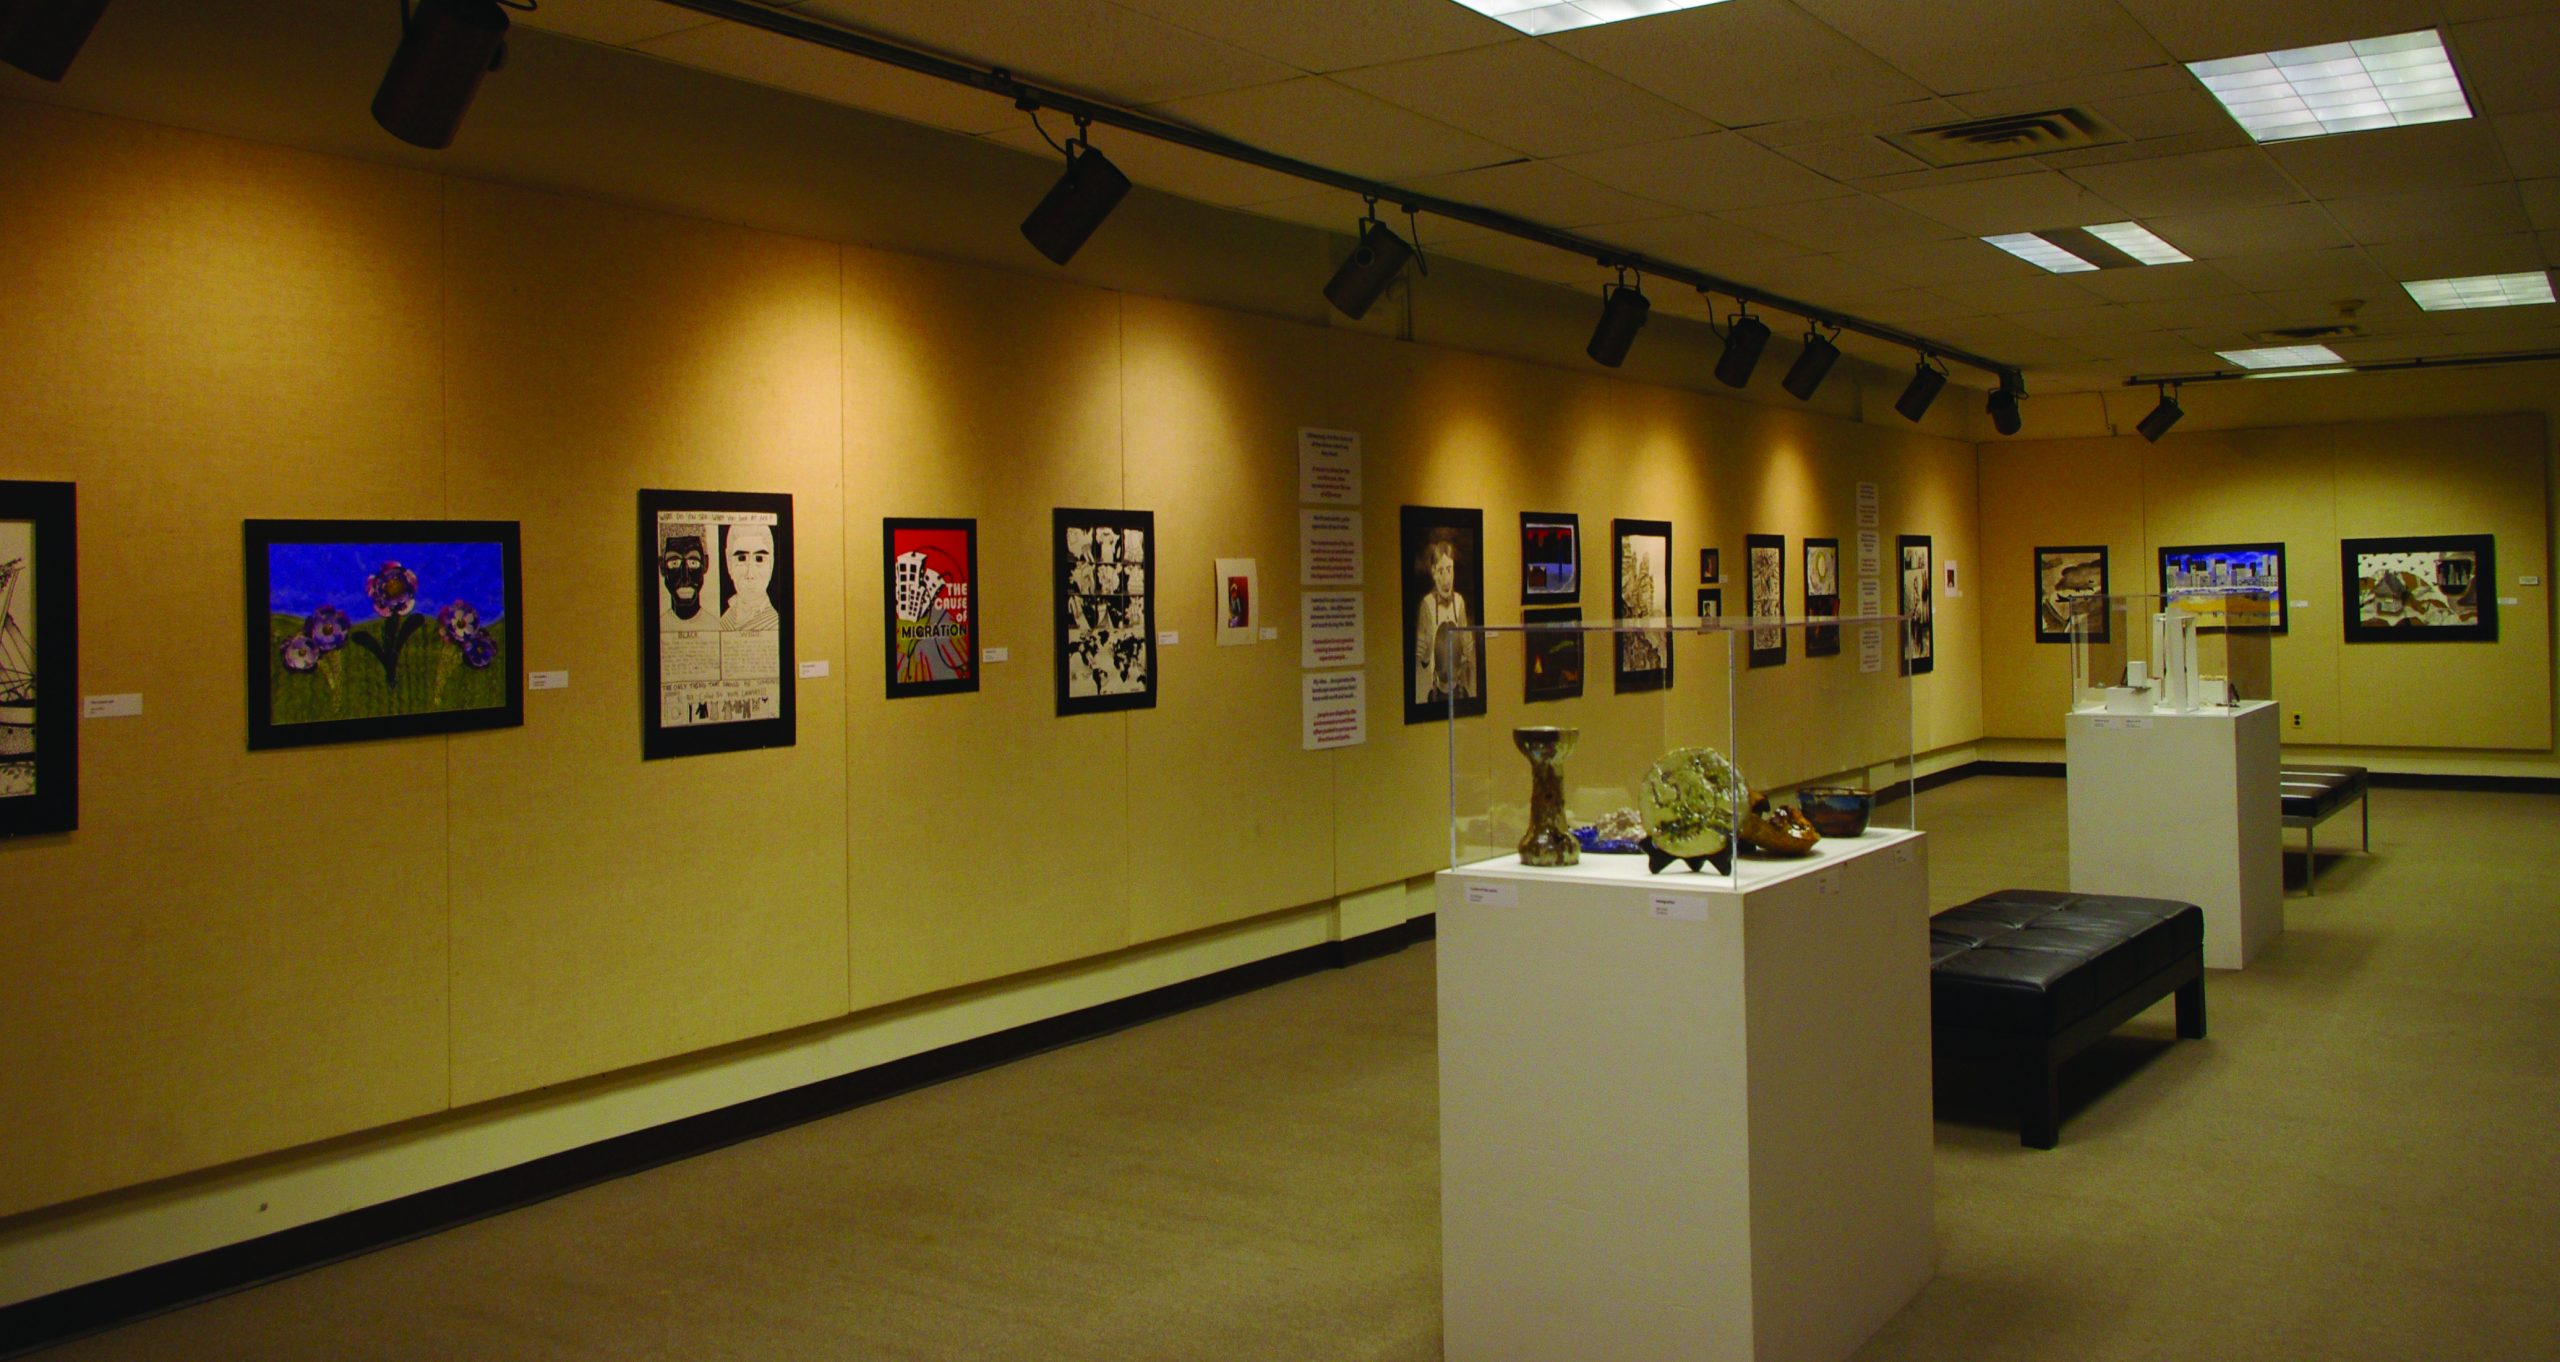 The North and South art gallery in the Good Library Gallery